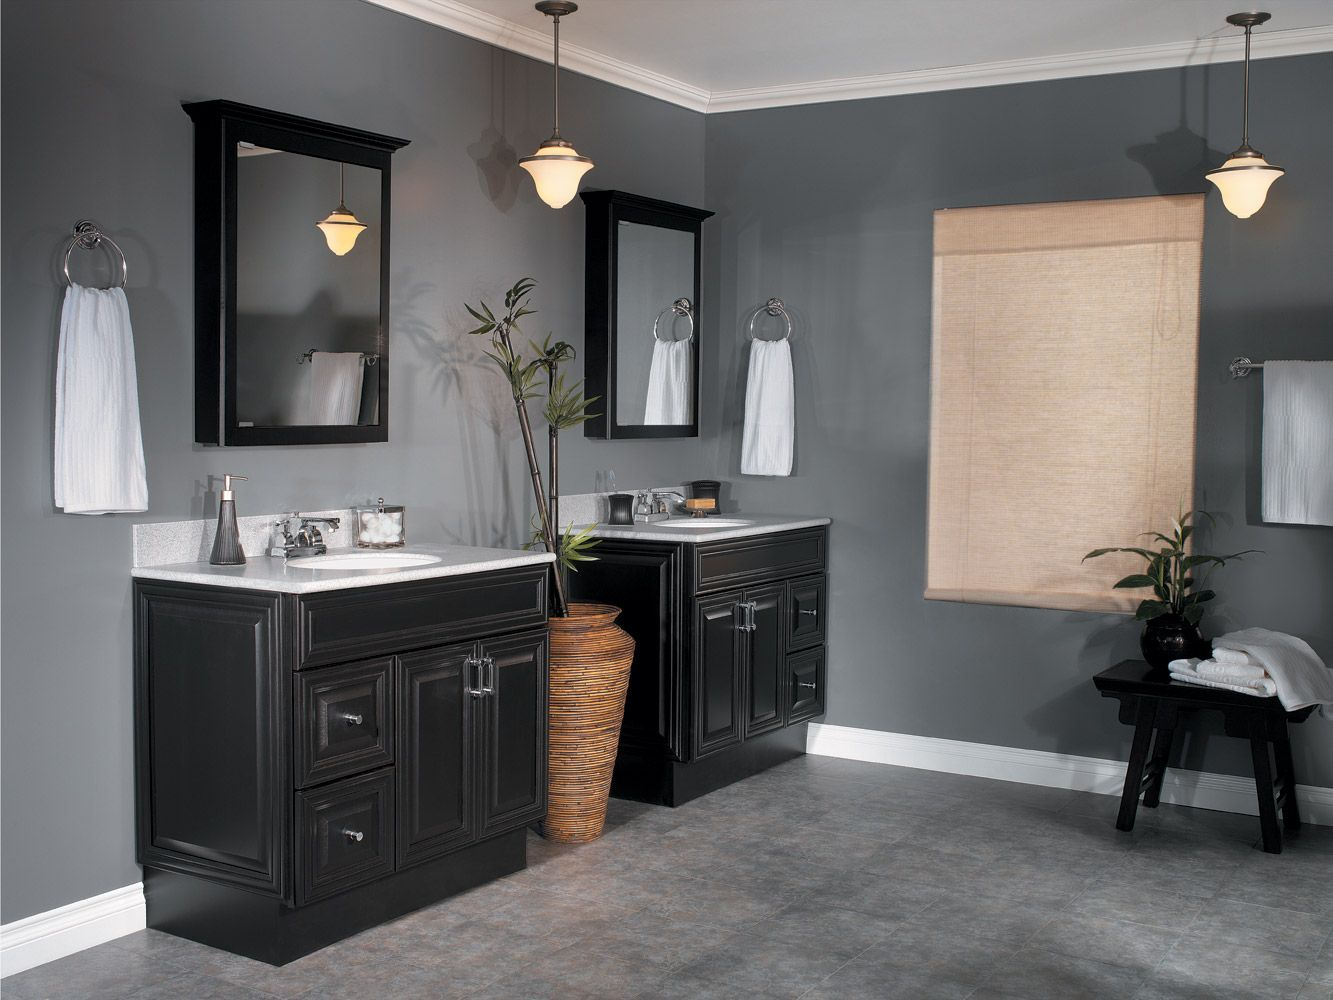 Man Bathroom Ideas Bathrooms With Grey Walls And Black Cabinets Inside Colored